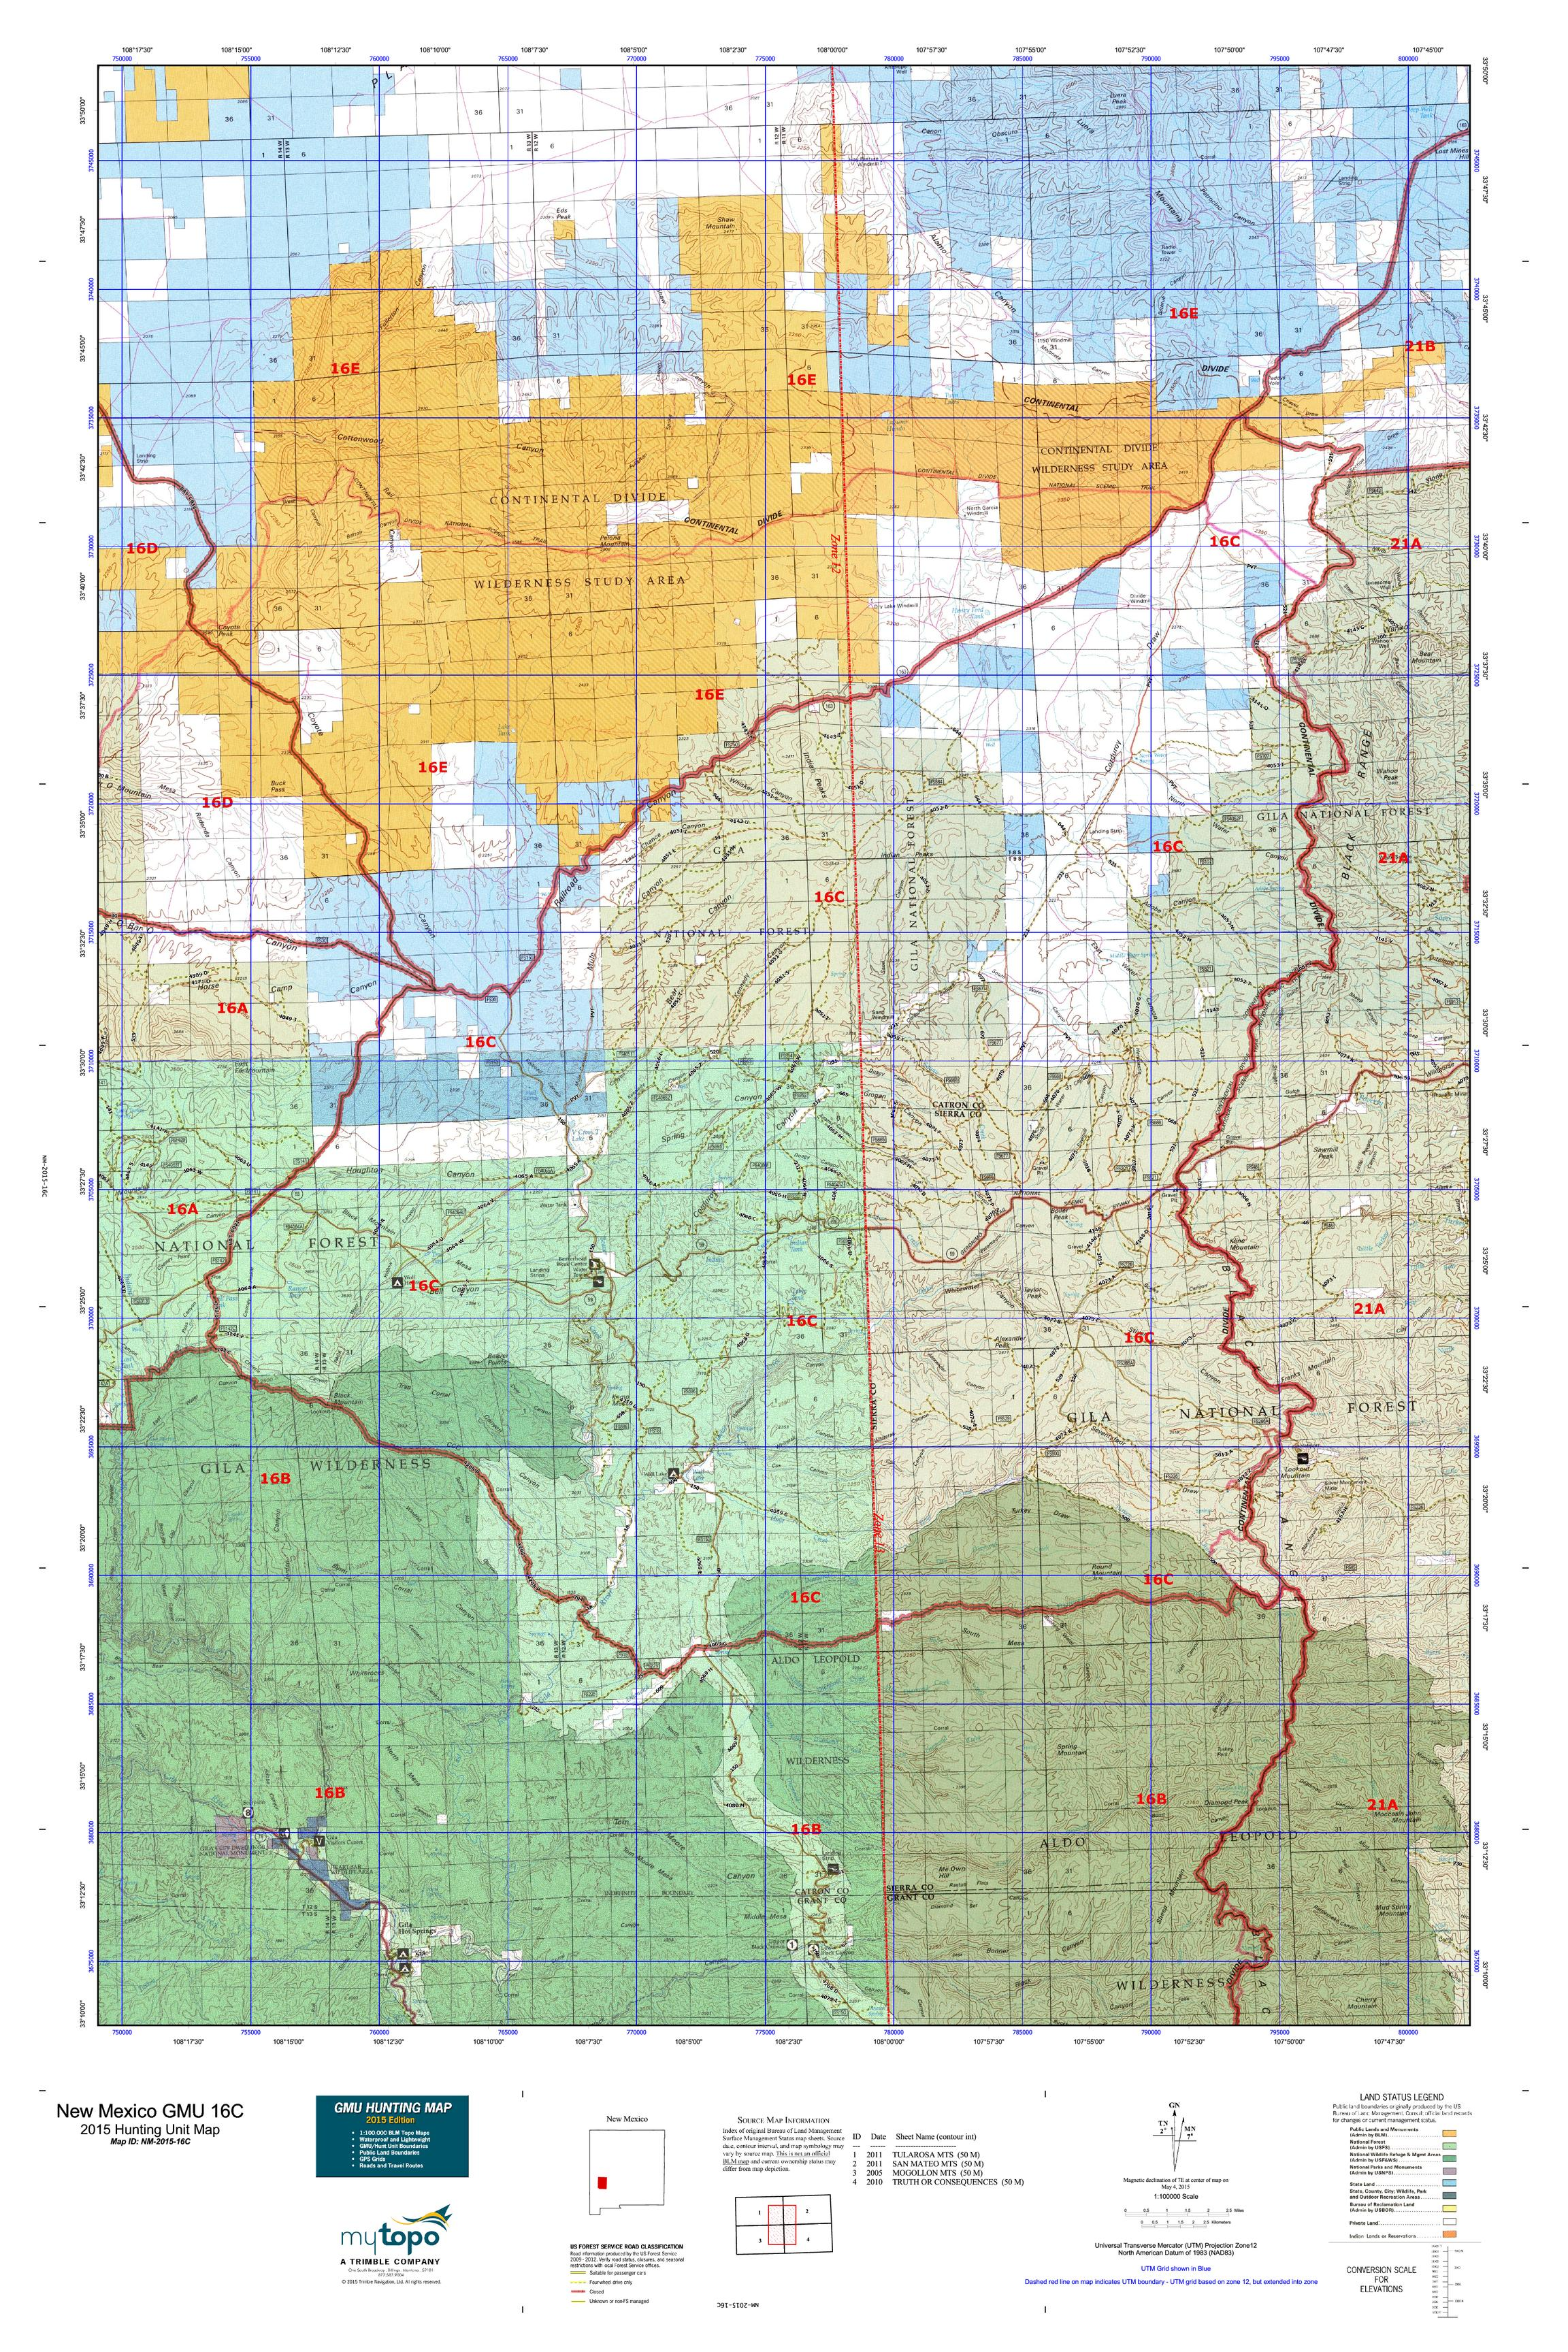 New Mexico GMU 16C Map  MyTopo